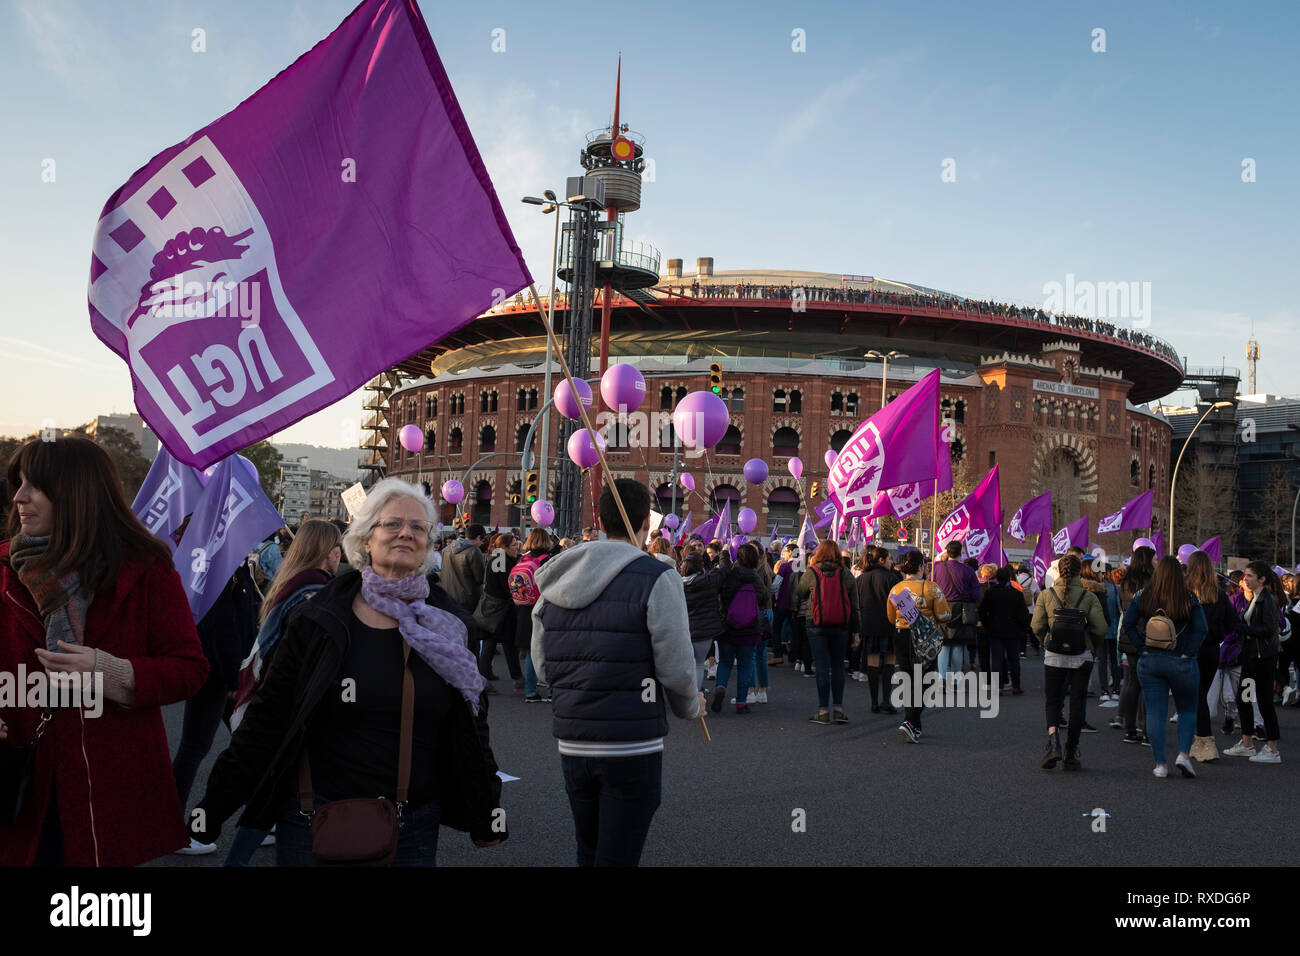 Barcelona, Spain. 09th Mar, 2019. People gather to mark the International Women's Day, in Barcelona, Spain on March 08, 2019. This is an inclusive demonstration and march for all women, where all supporters and allies of all genders are welcome. Credit: Oscar Dominguez/Alamy Live News Stock Photo